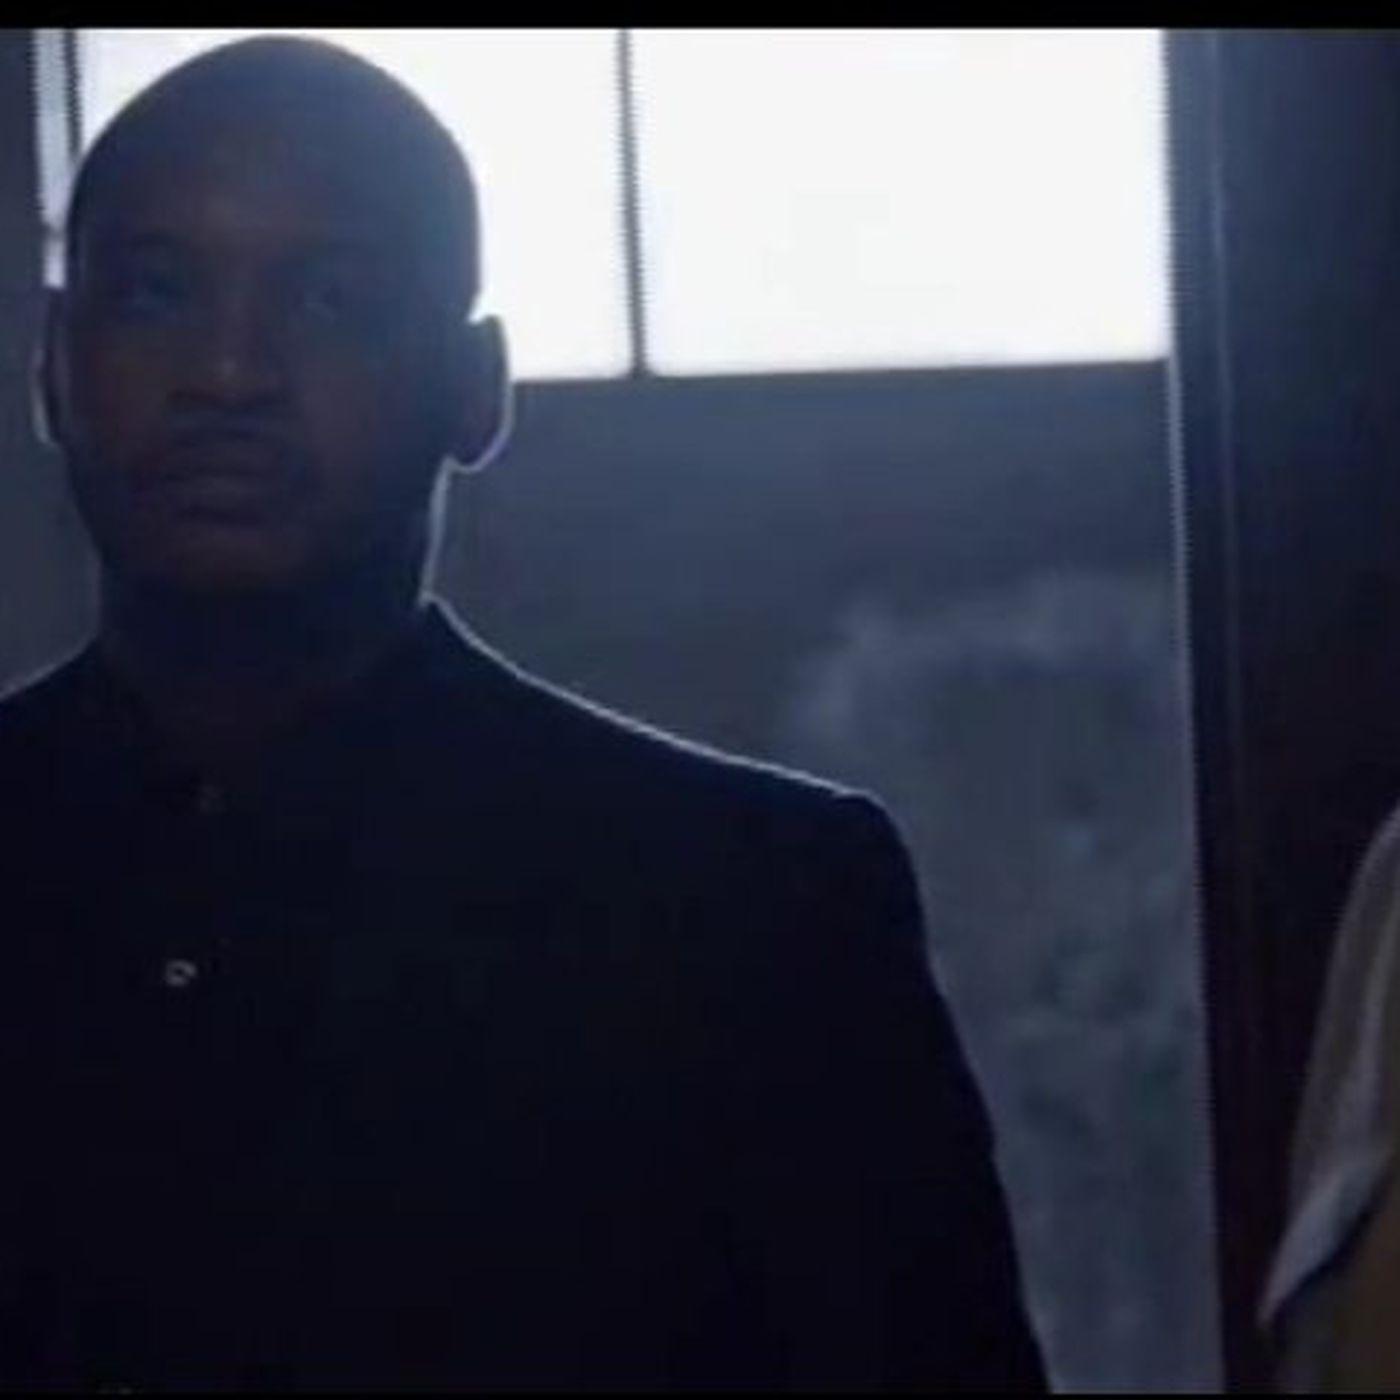 Anarchy Nation Pictures carmelo anthony made a cameo on sons of anarchy for some